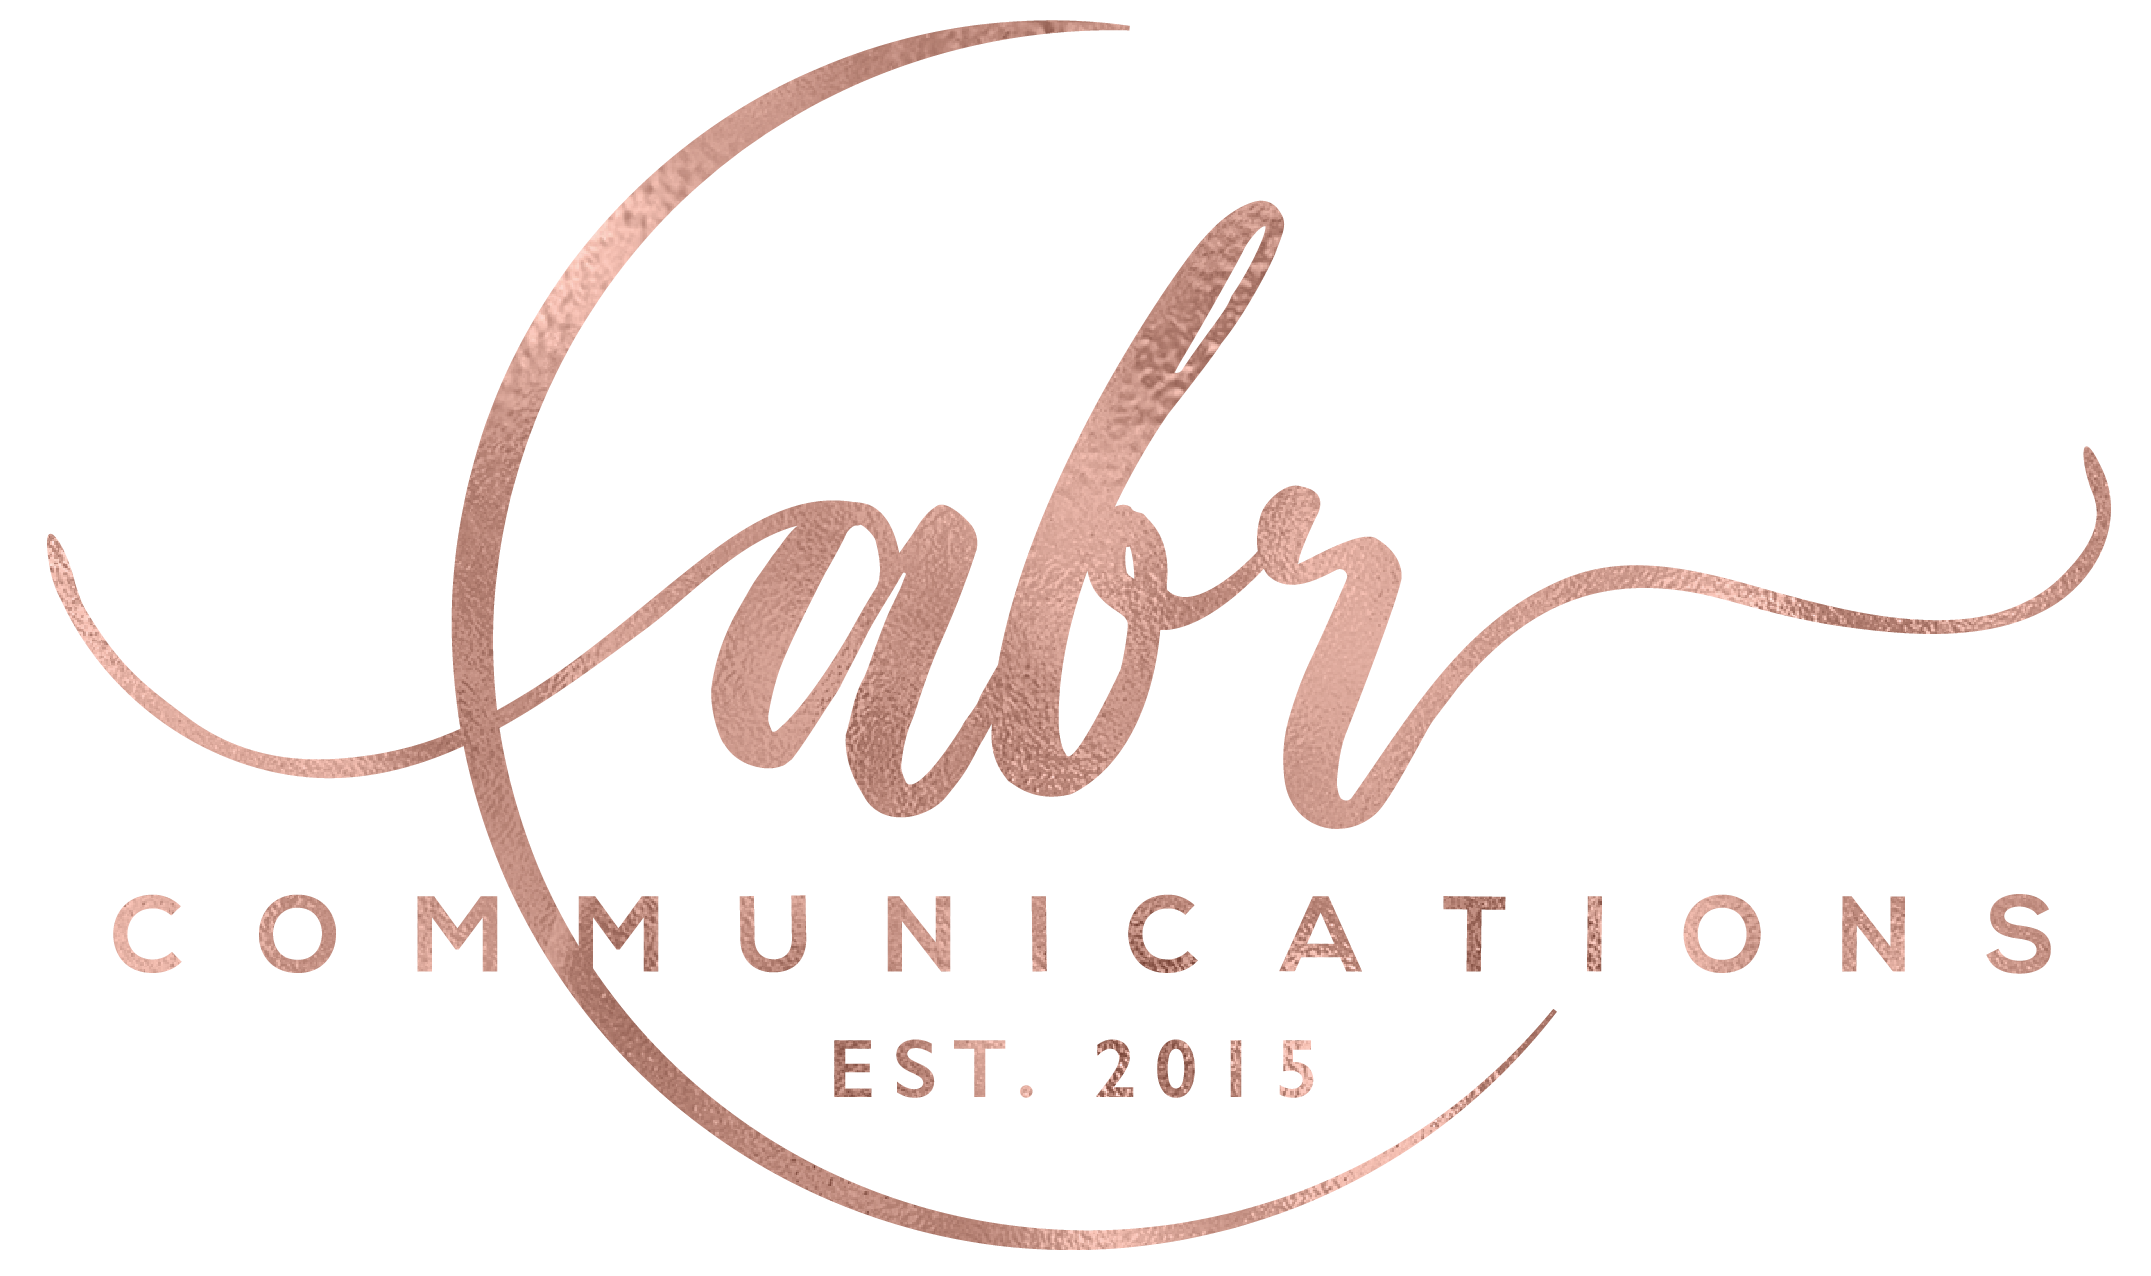 ABR Communications